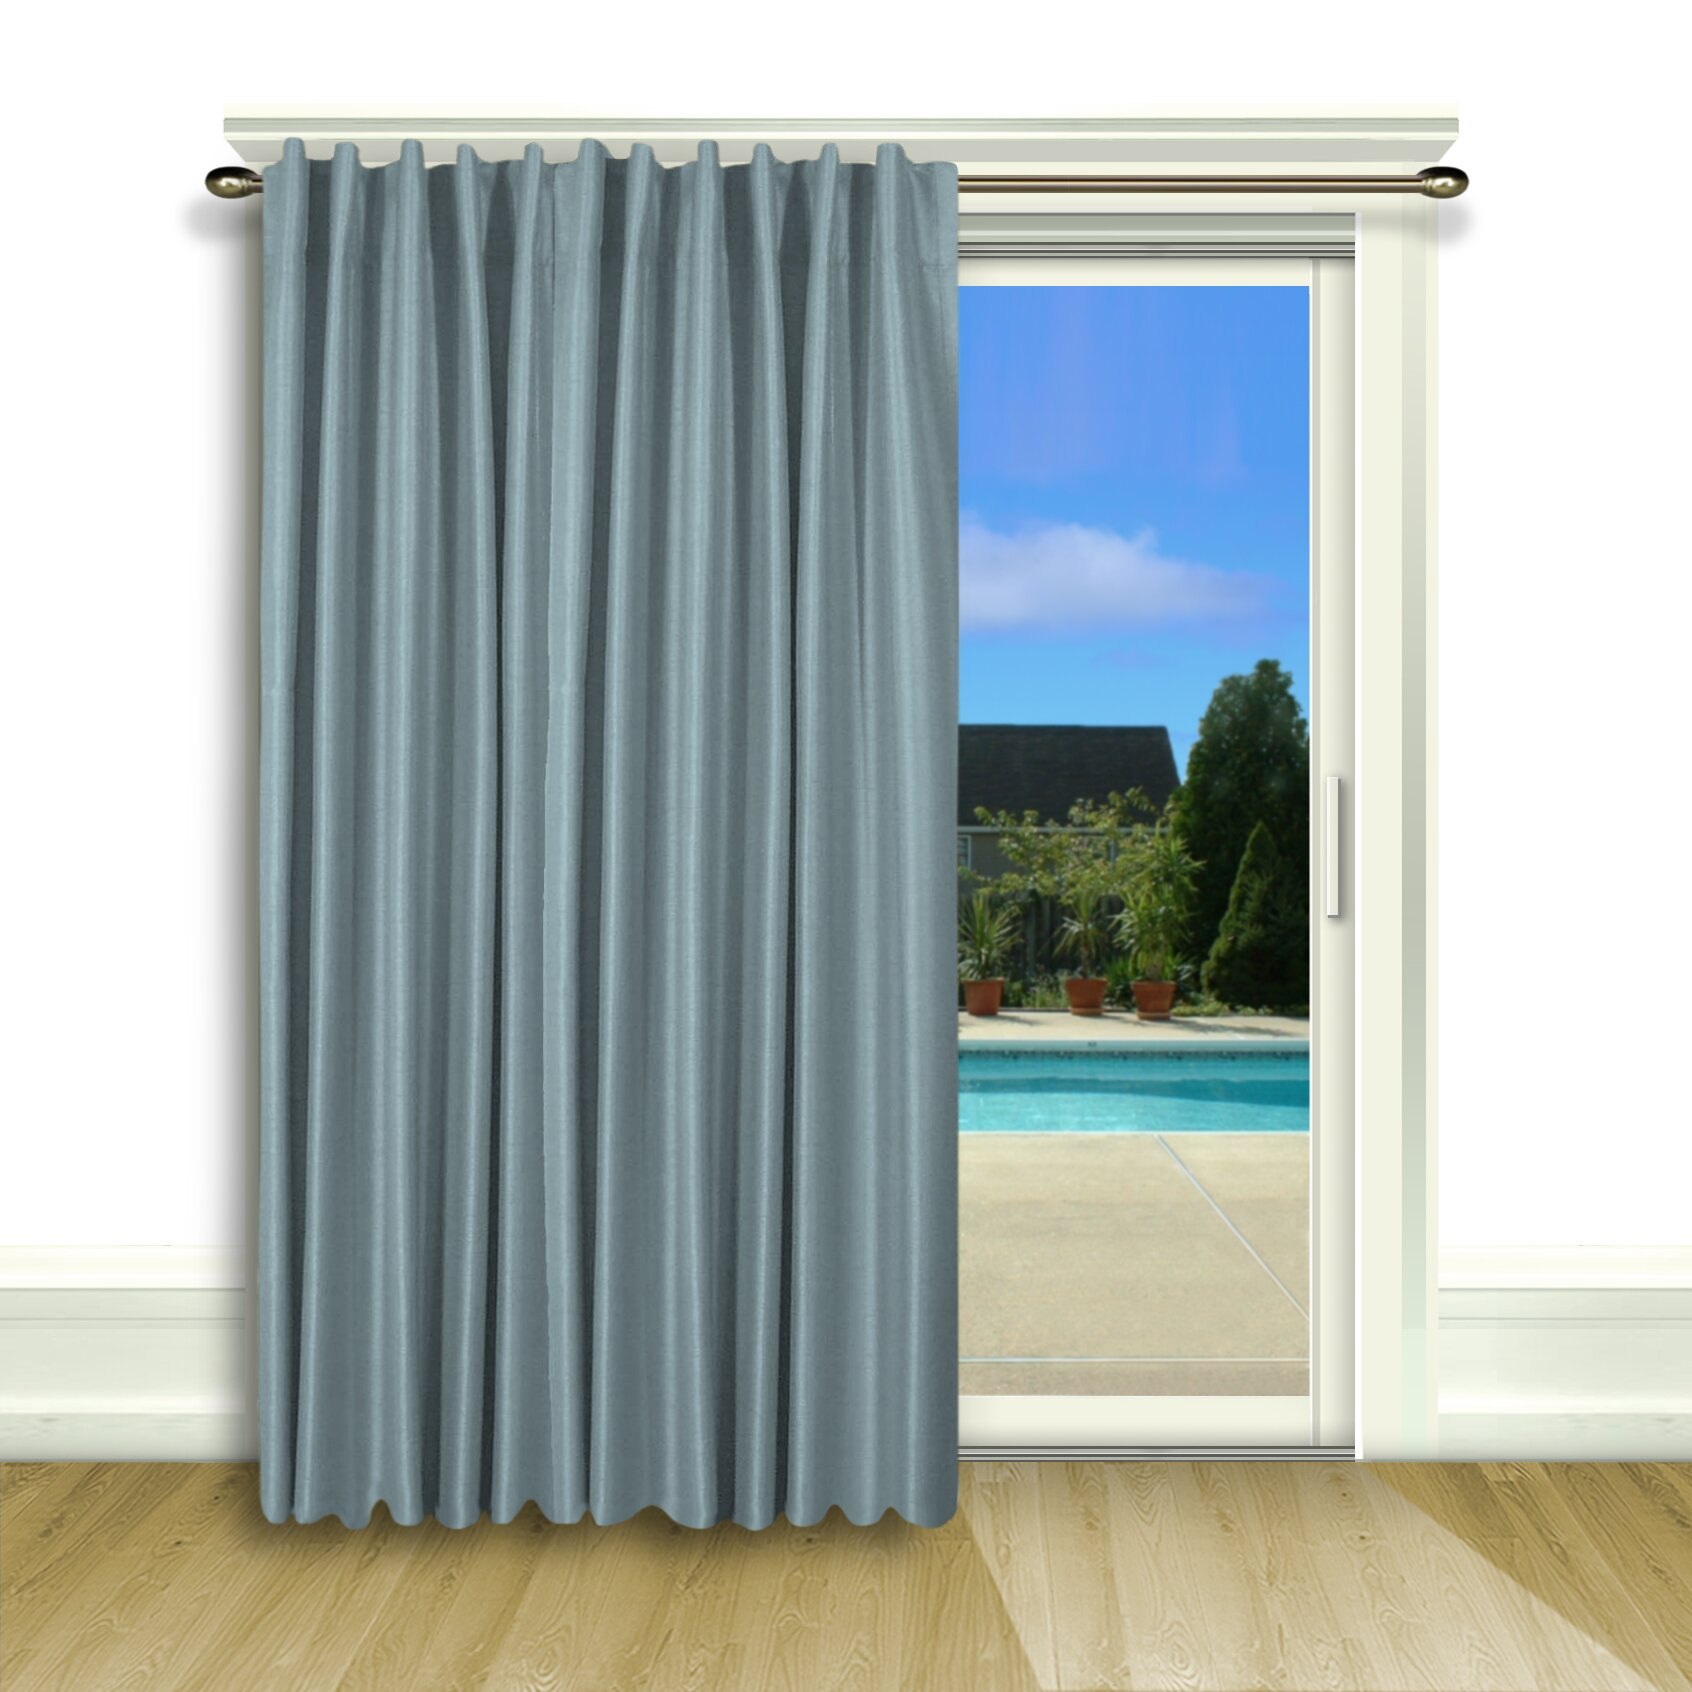 darby home co budde curtain patio blackout thermal single